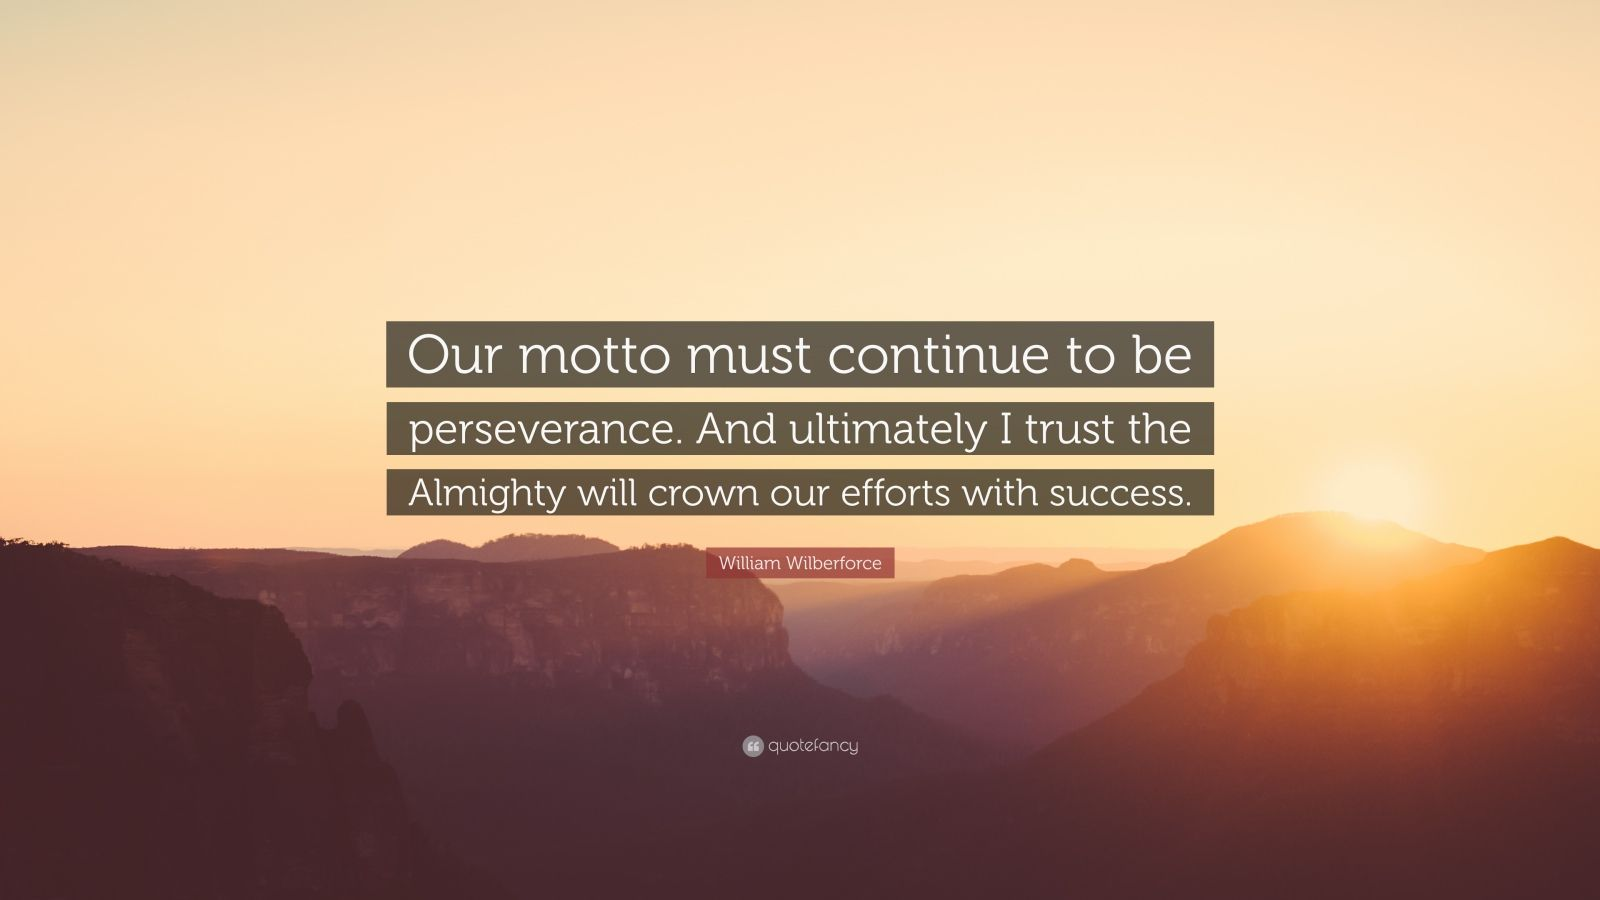 """William Wilberforce Quote: """"Our motto must continue to be perseverance. And ultimately I trust the Almighty will crown our efforts with success."""""""